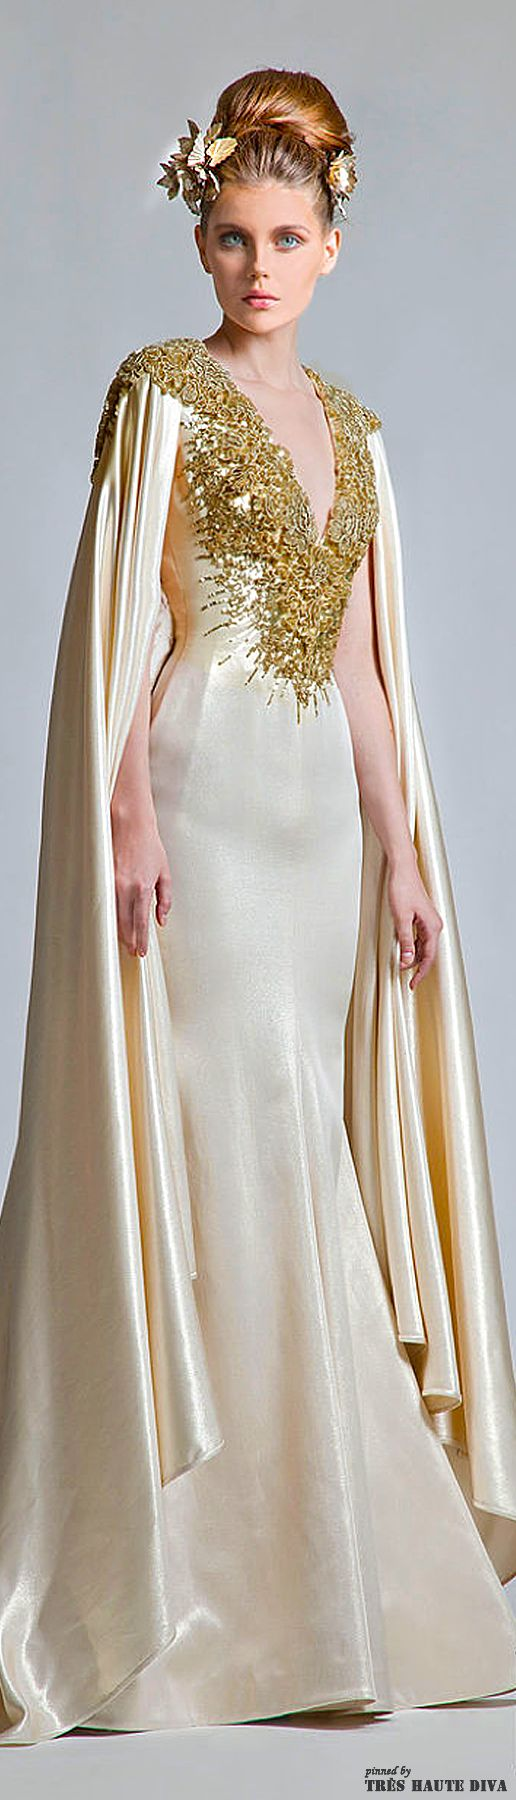 Lady Millionairess....Krikor Jabotian Couture 2013 | The House of Beccaria~